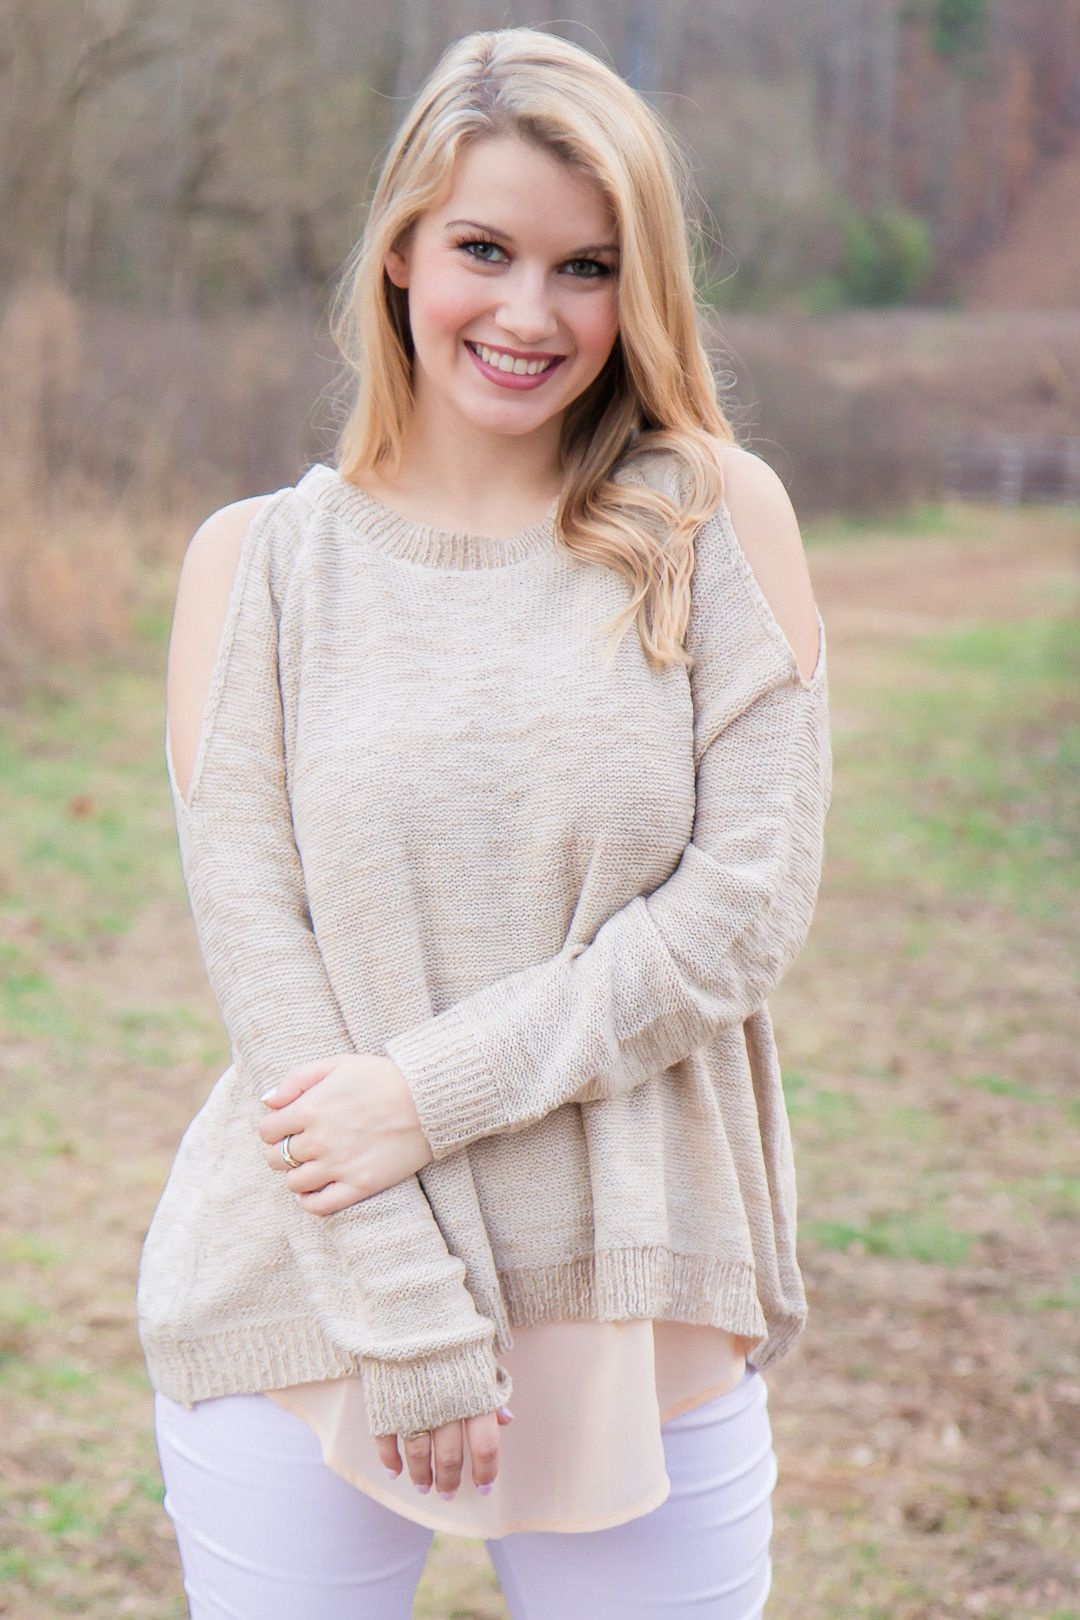 Worth the Wait Sweater  Vendor: AtType: TopsPrice: 48.00  Transition to Spring in this lightweight open-shoulder sweater. Sweater features a split back with a sheer underlayer.  Model wears a small.  Small fits 2-4. Medium fits 6-8. Large fits 10.